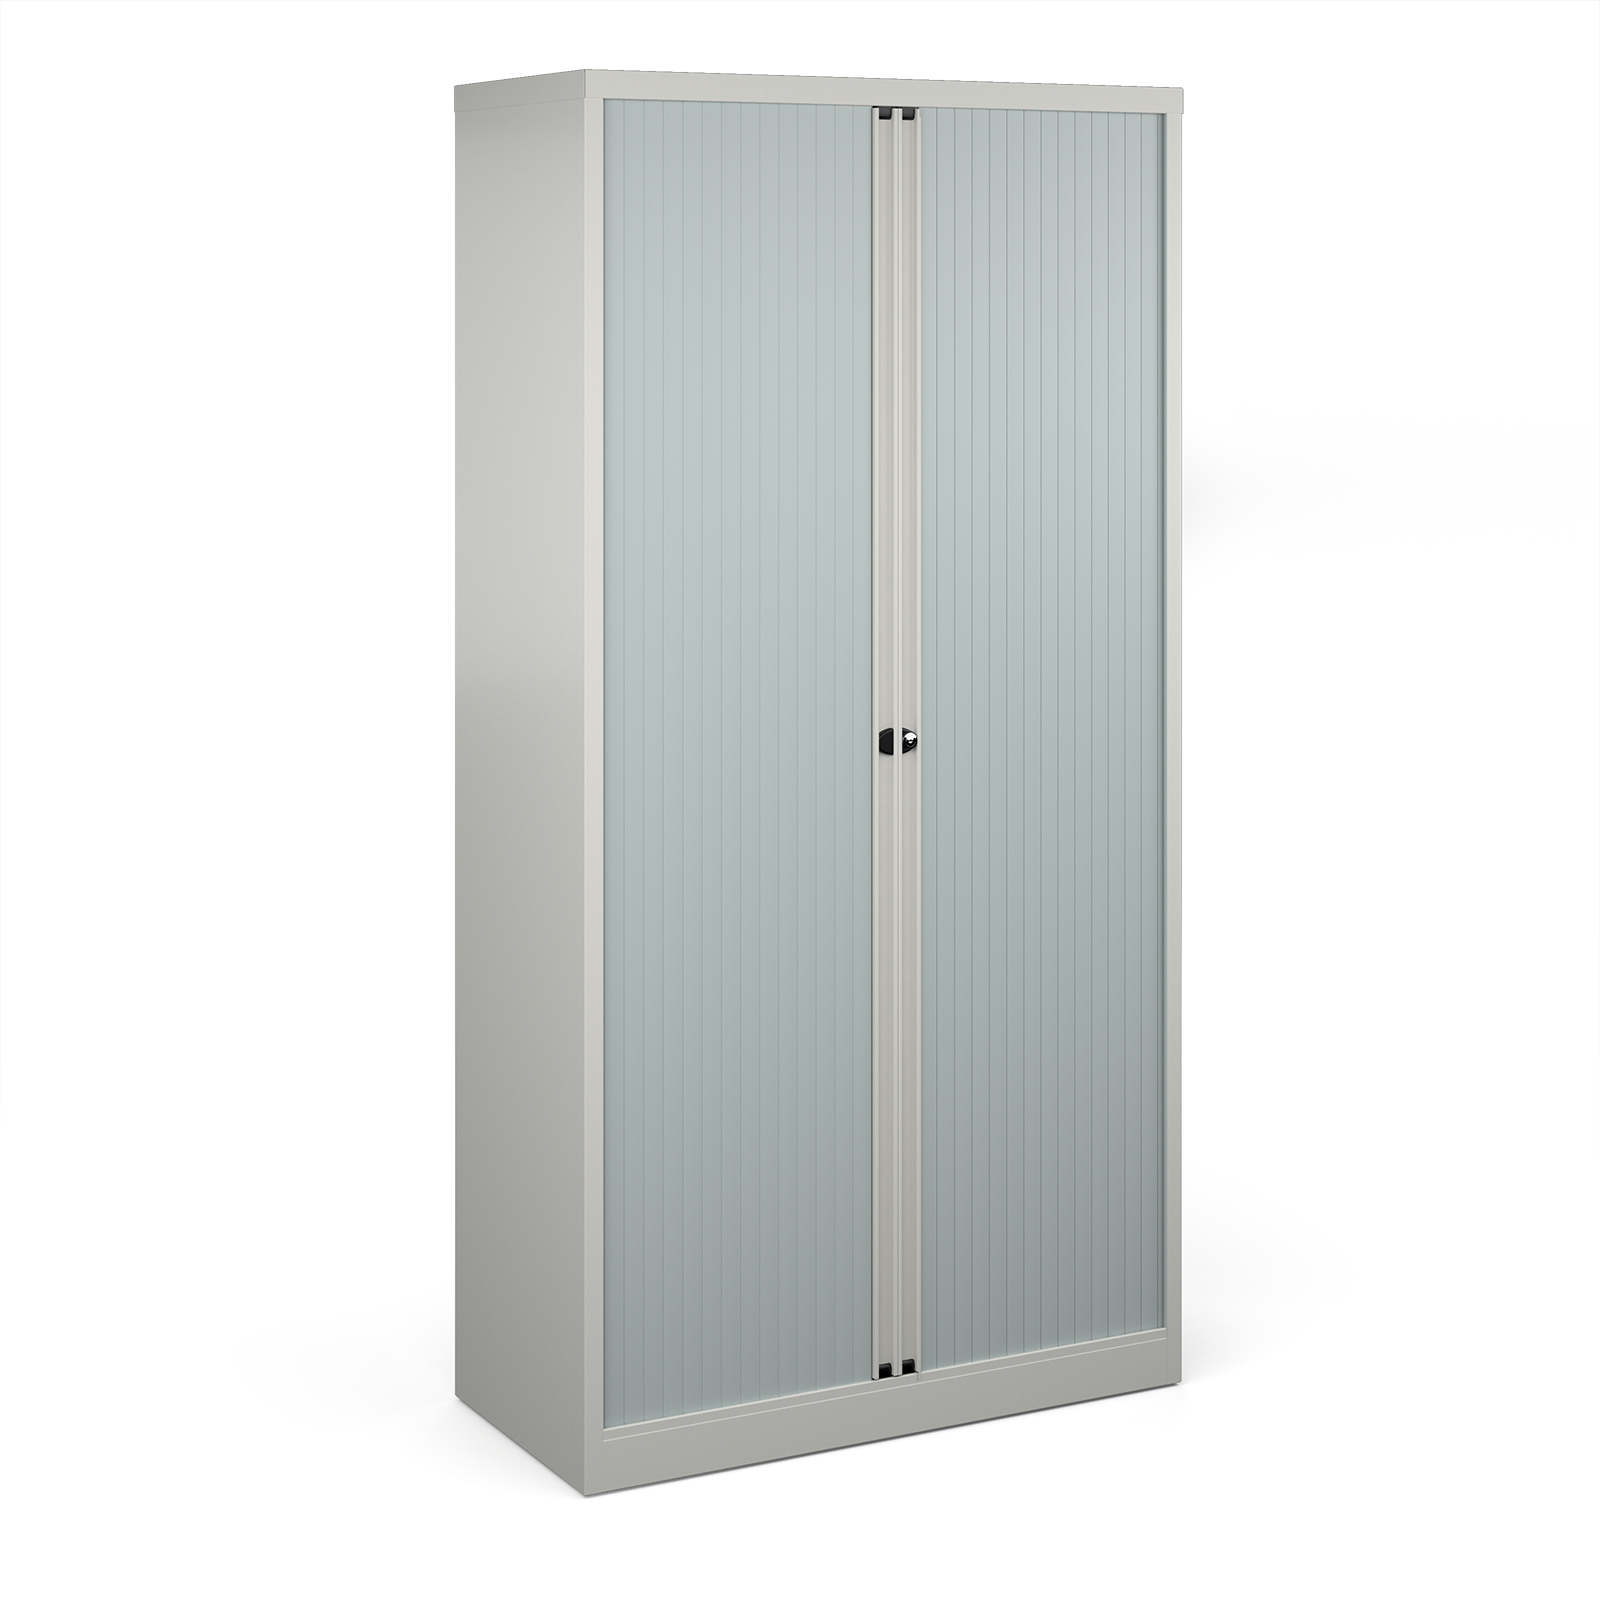 Over 1200mm High Bisley systems storage high tambour cupboard 1970mm high - goose grey